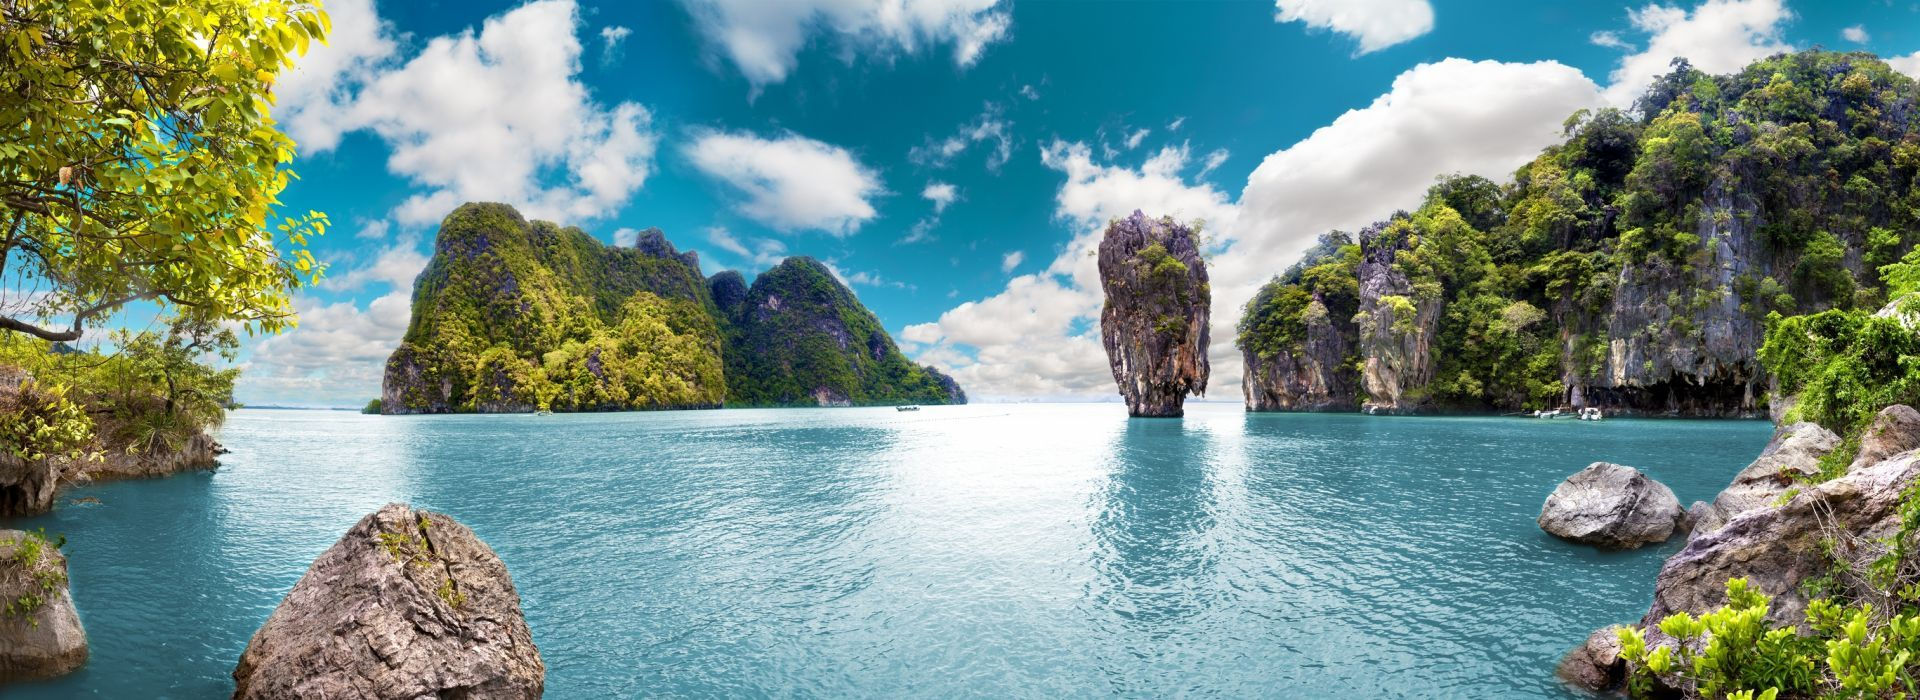 Photography tours in Thailand